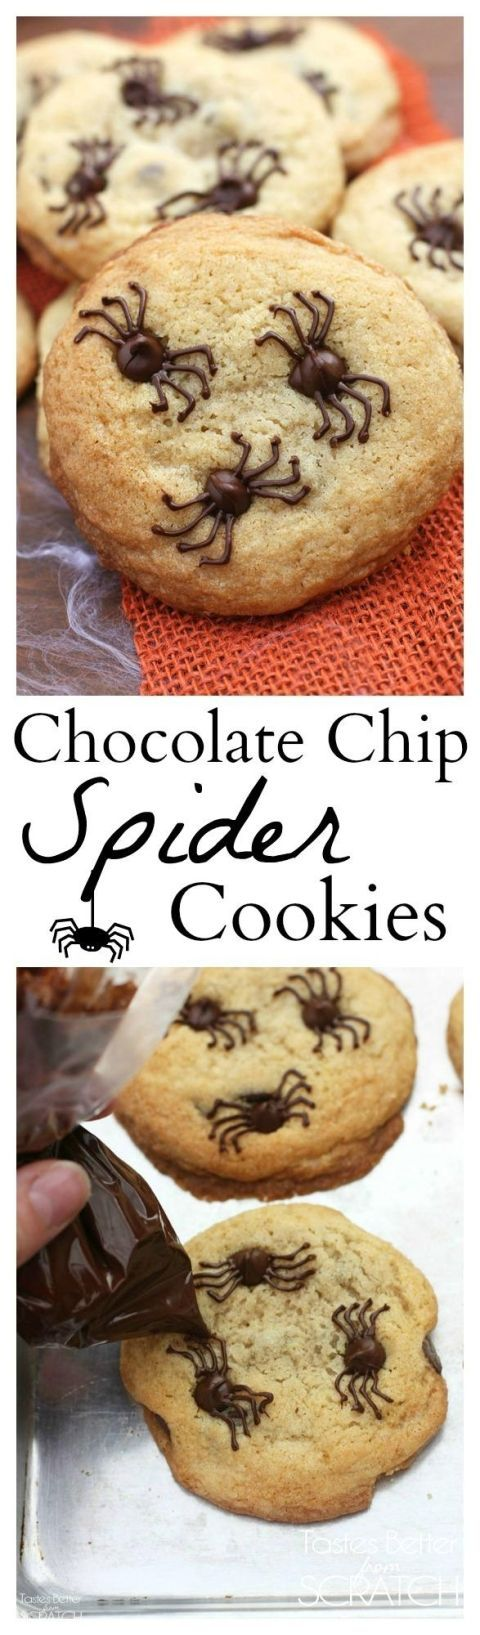 Chocolate Chip Spider Cookies make the perfect fun and easy Halloween treat! | Tastes Better From Scratch